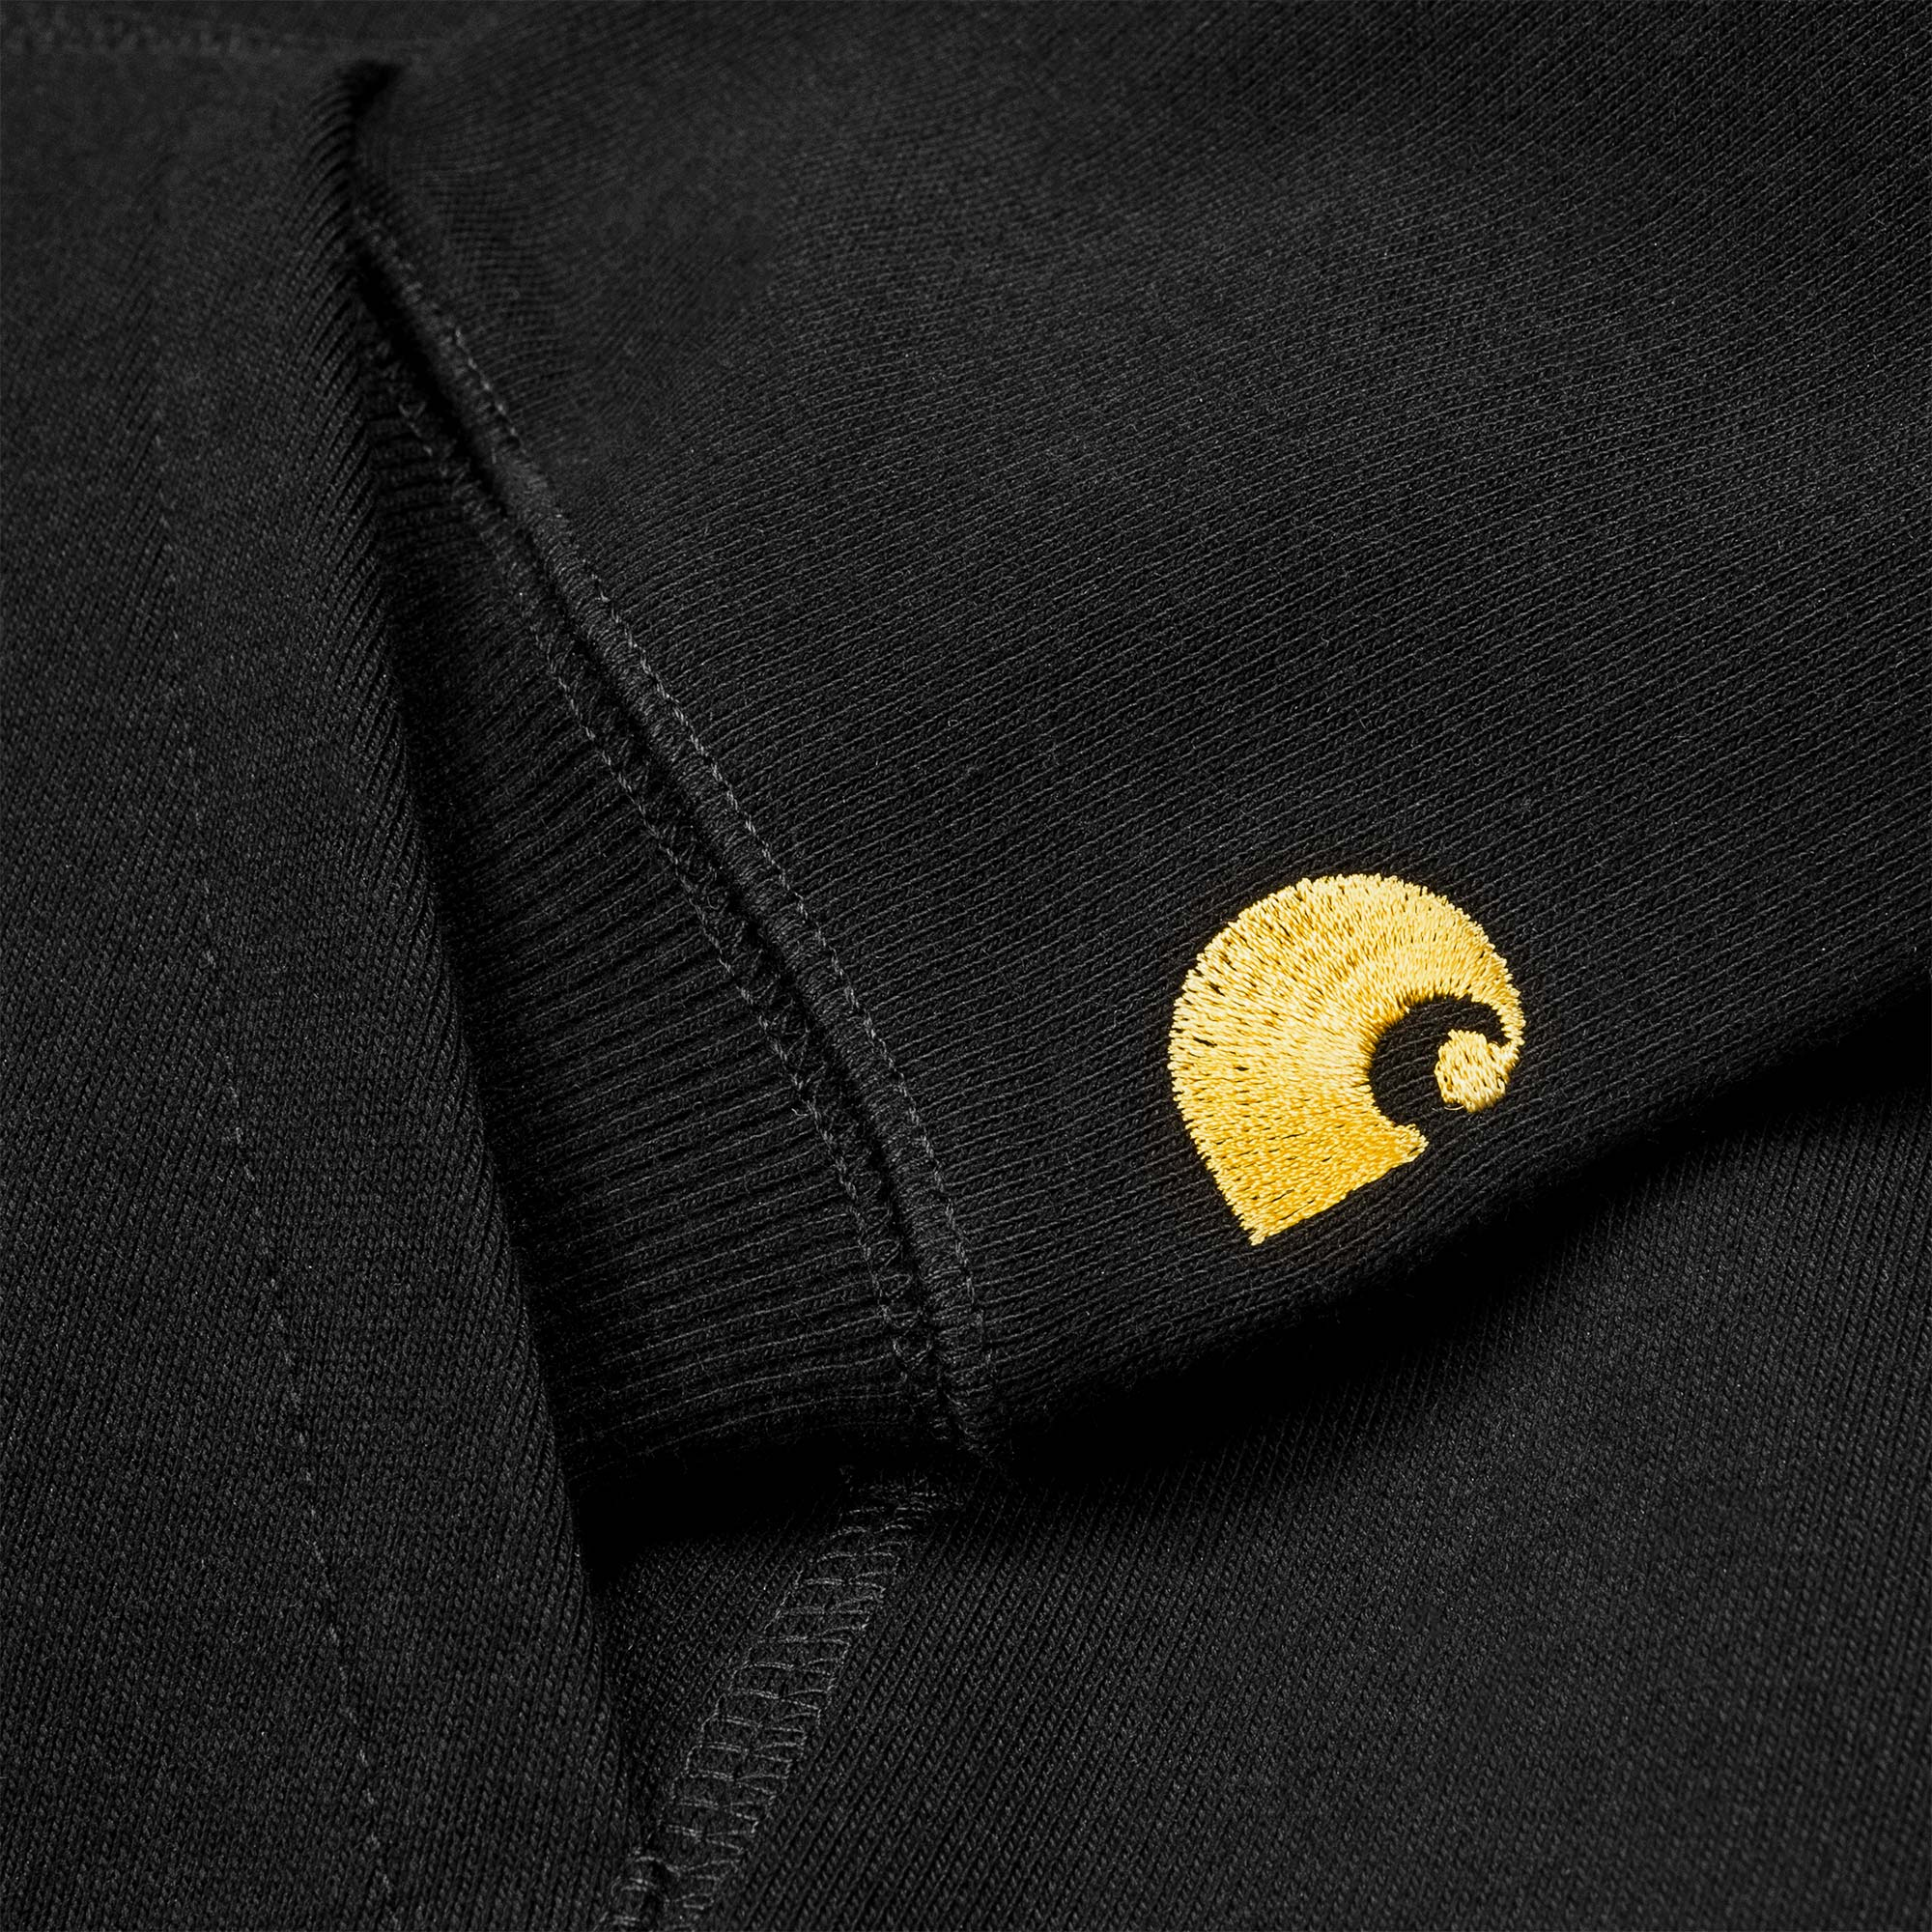 Carhartt WIP Hooded Chase Sweat - Black / Gold 3